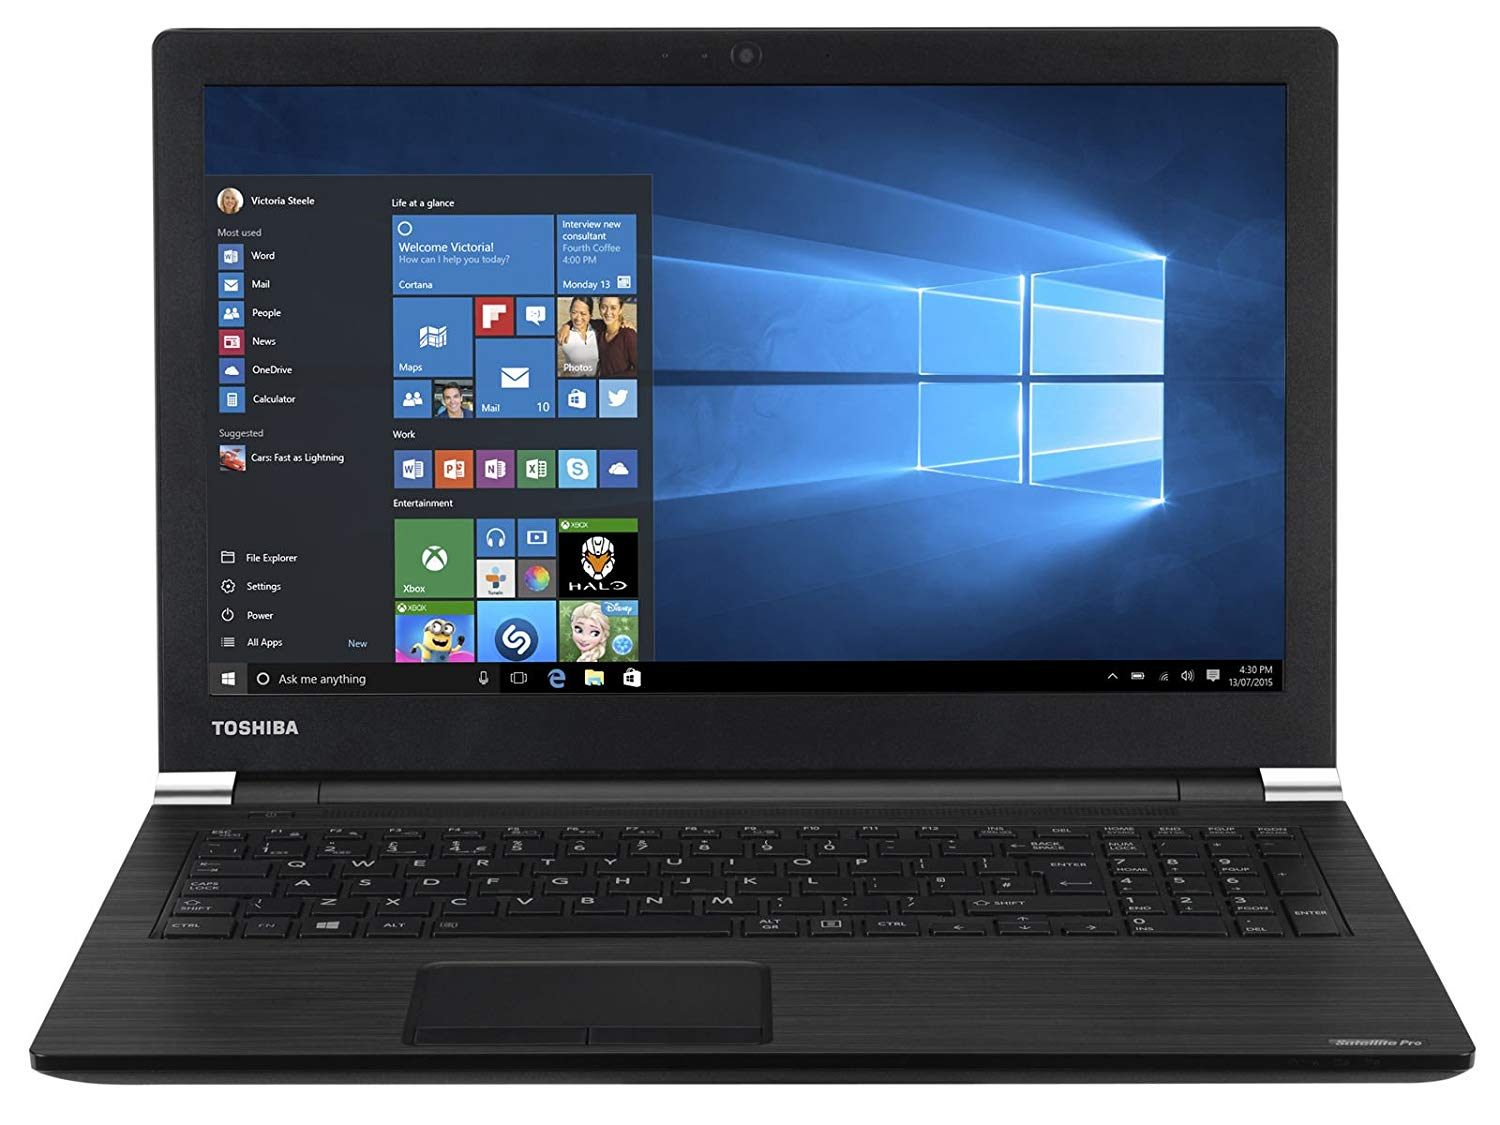 Toshiba Satellite Pro A50 15.6in i7 8GB Notebook